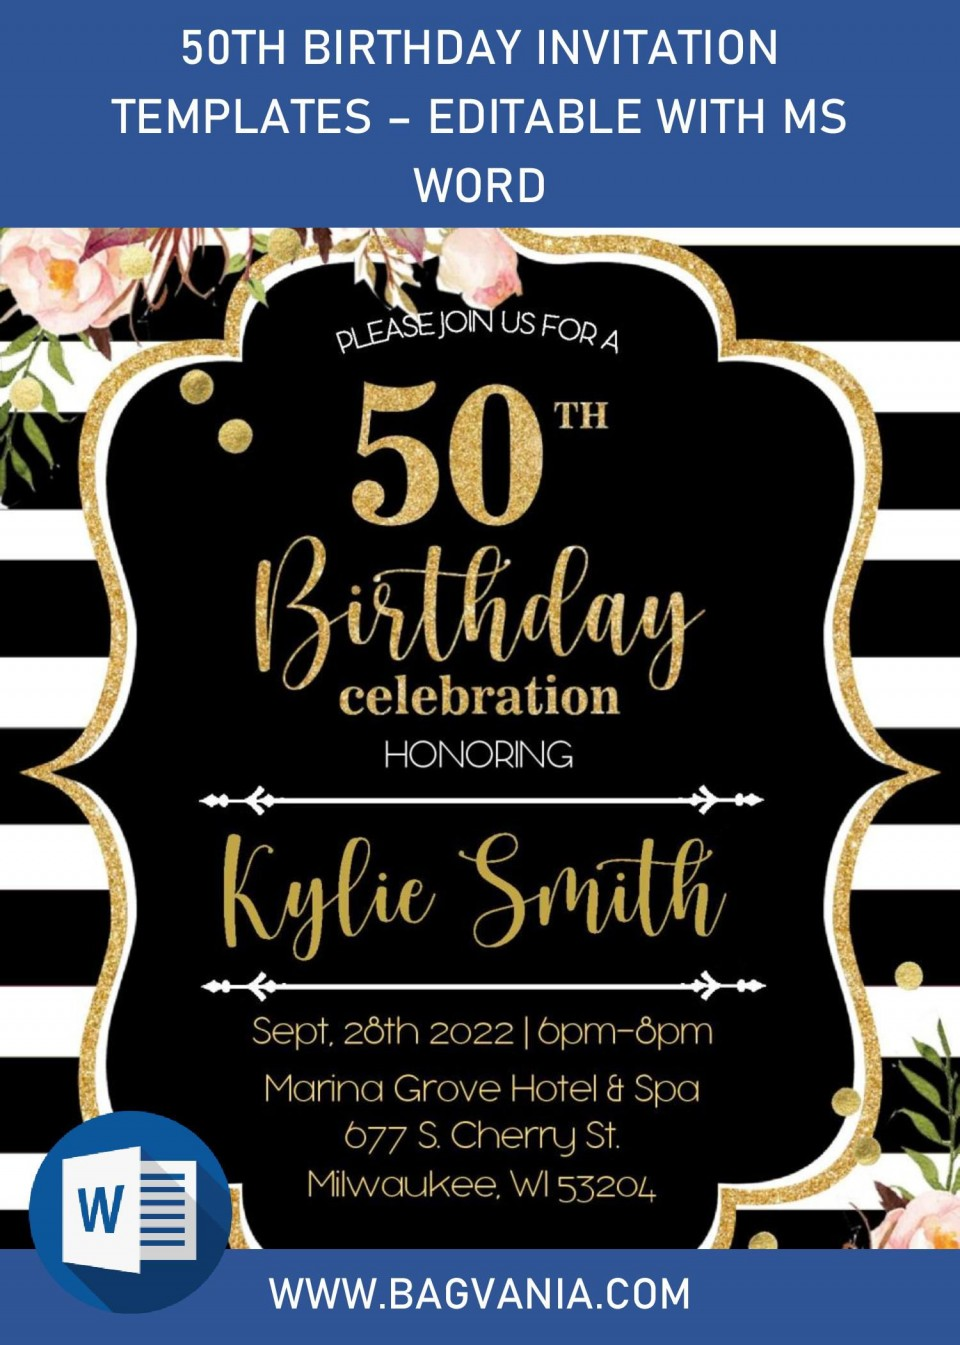 003 Phenomenal Microsoft Word 50th Birthday Invitation Template Highest Quality  Wedding Anniversary Editable960